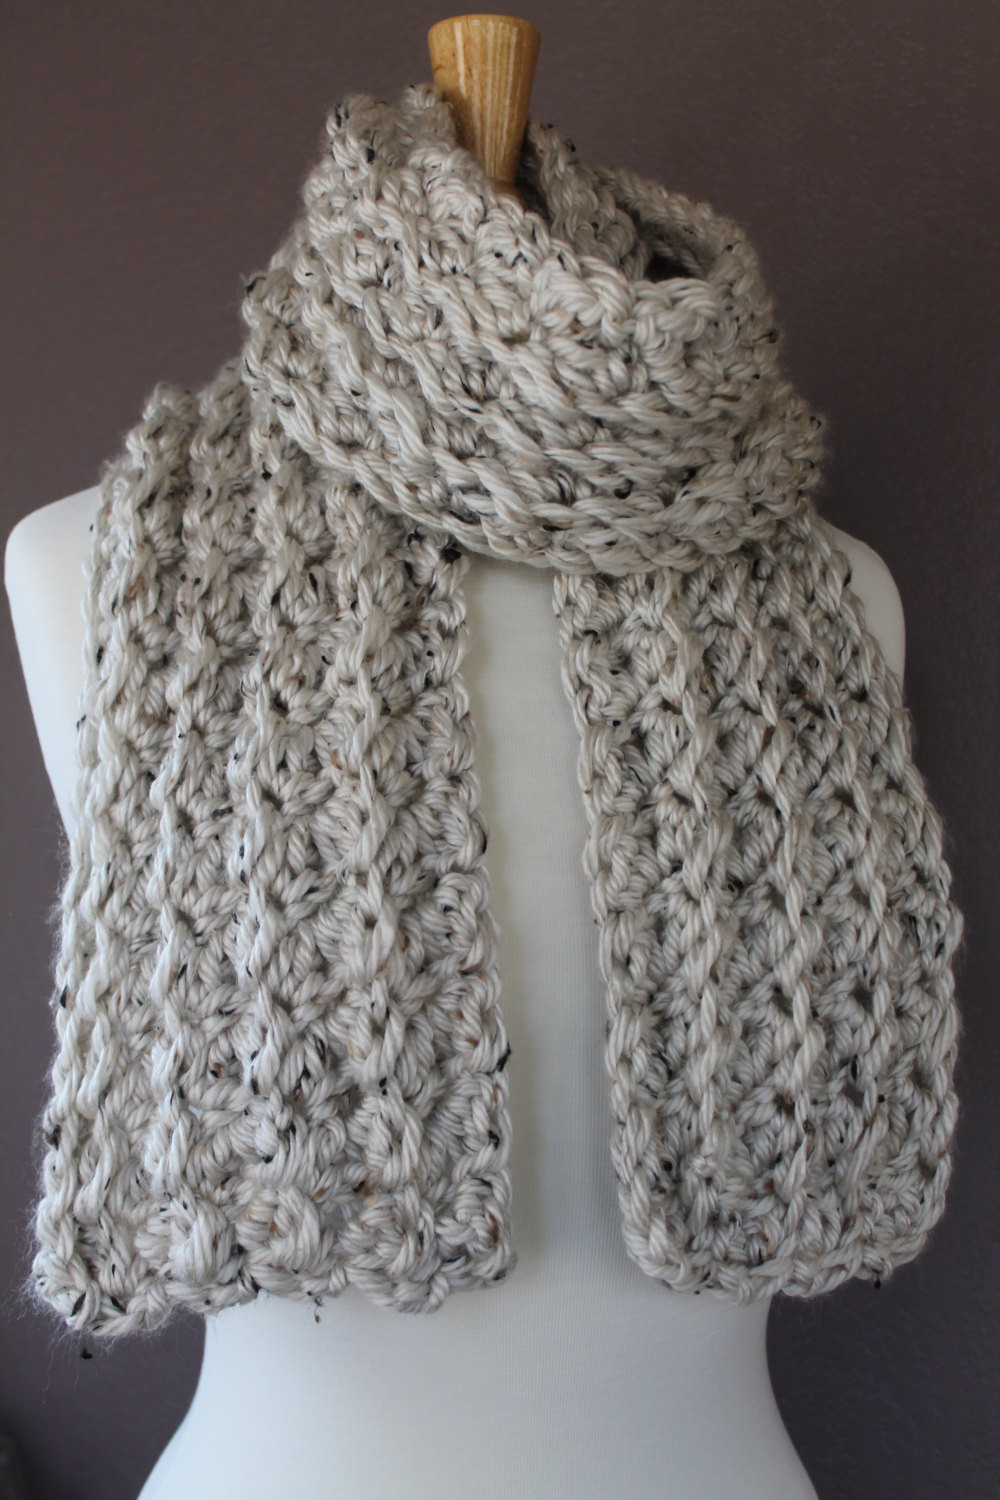 Crochet Scarf Inspirational Chunky Crochet Scarf Pattern Crafty Mn Mom Of Incredible 48 Images Crochet Scarf